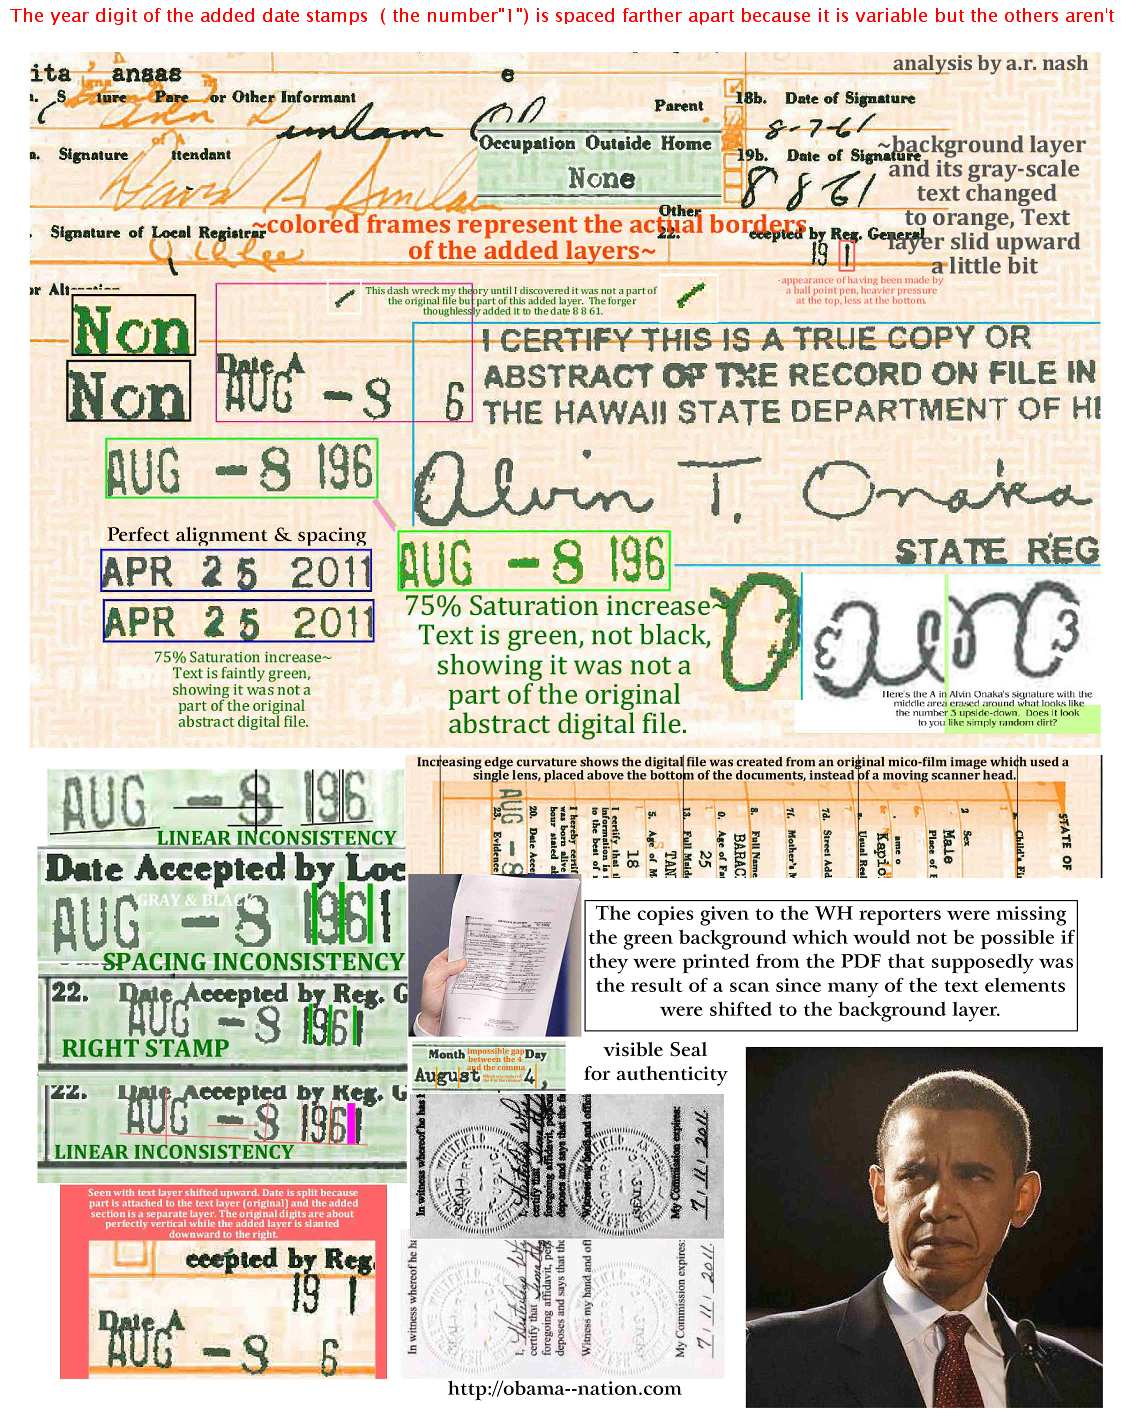 Give us liberty the evidence that proves obamas birth give us liberty the evidence that proves obamas birth certificate that he posted on the white house website is a fake aiddatafo Images